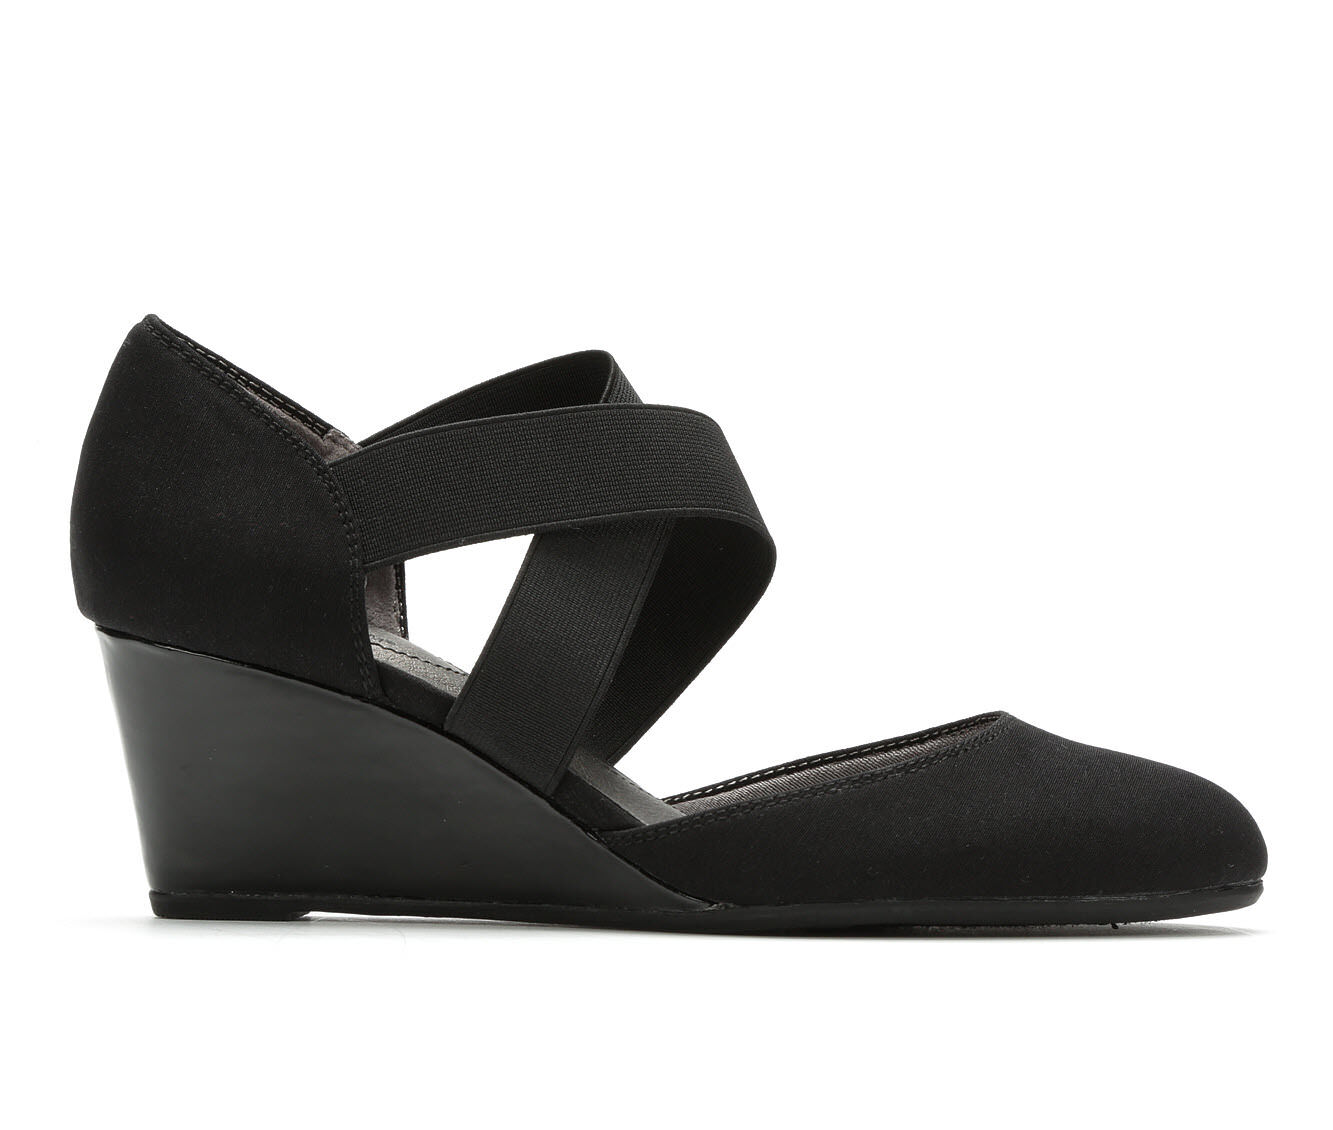 Shoes on the wedge - a win-win option